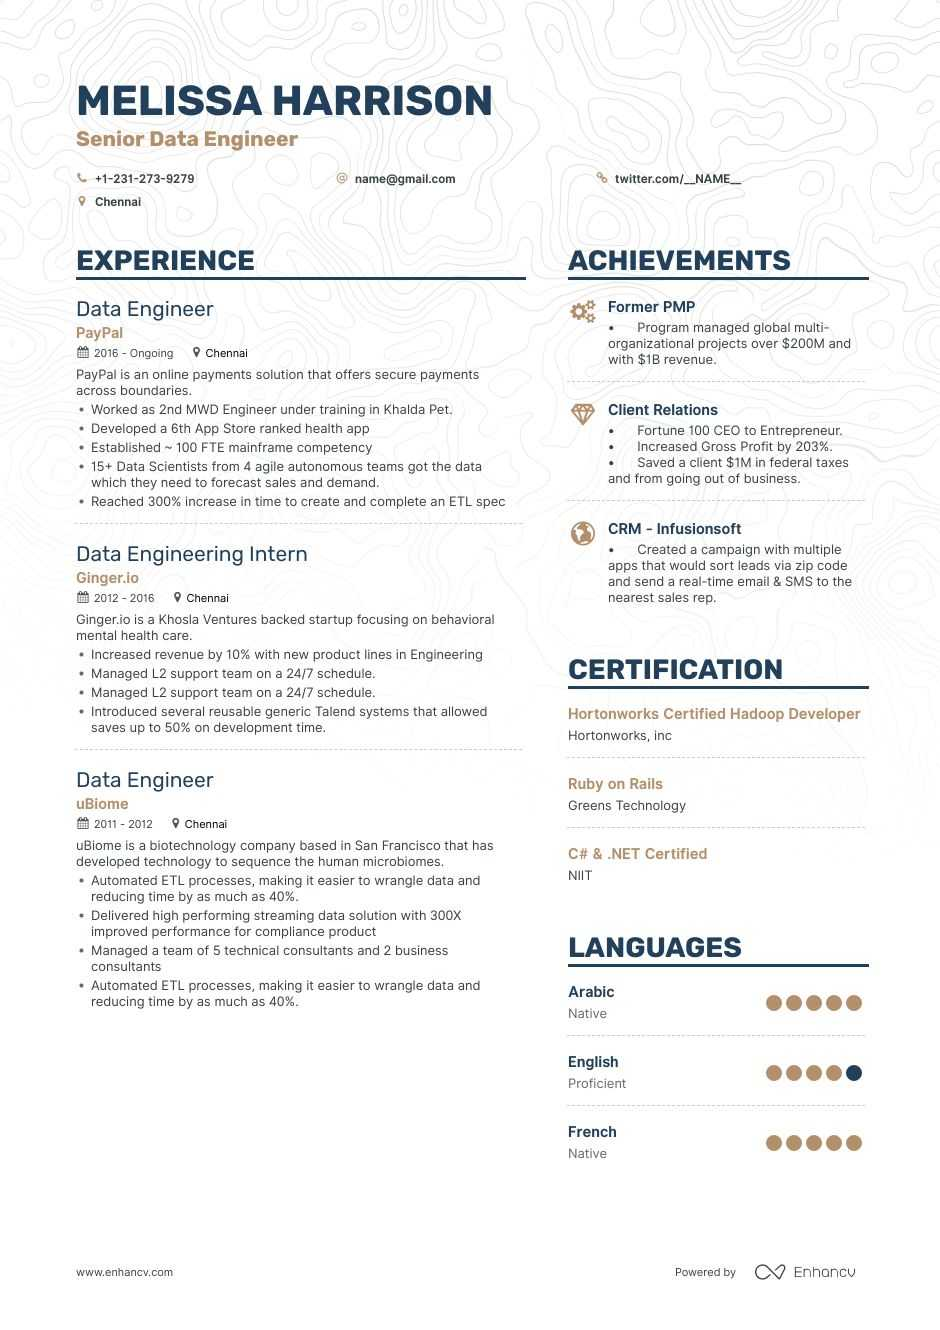 Data Engineer Resume Samples | Do\'s and Don\'ts for 2019